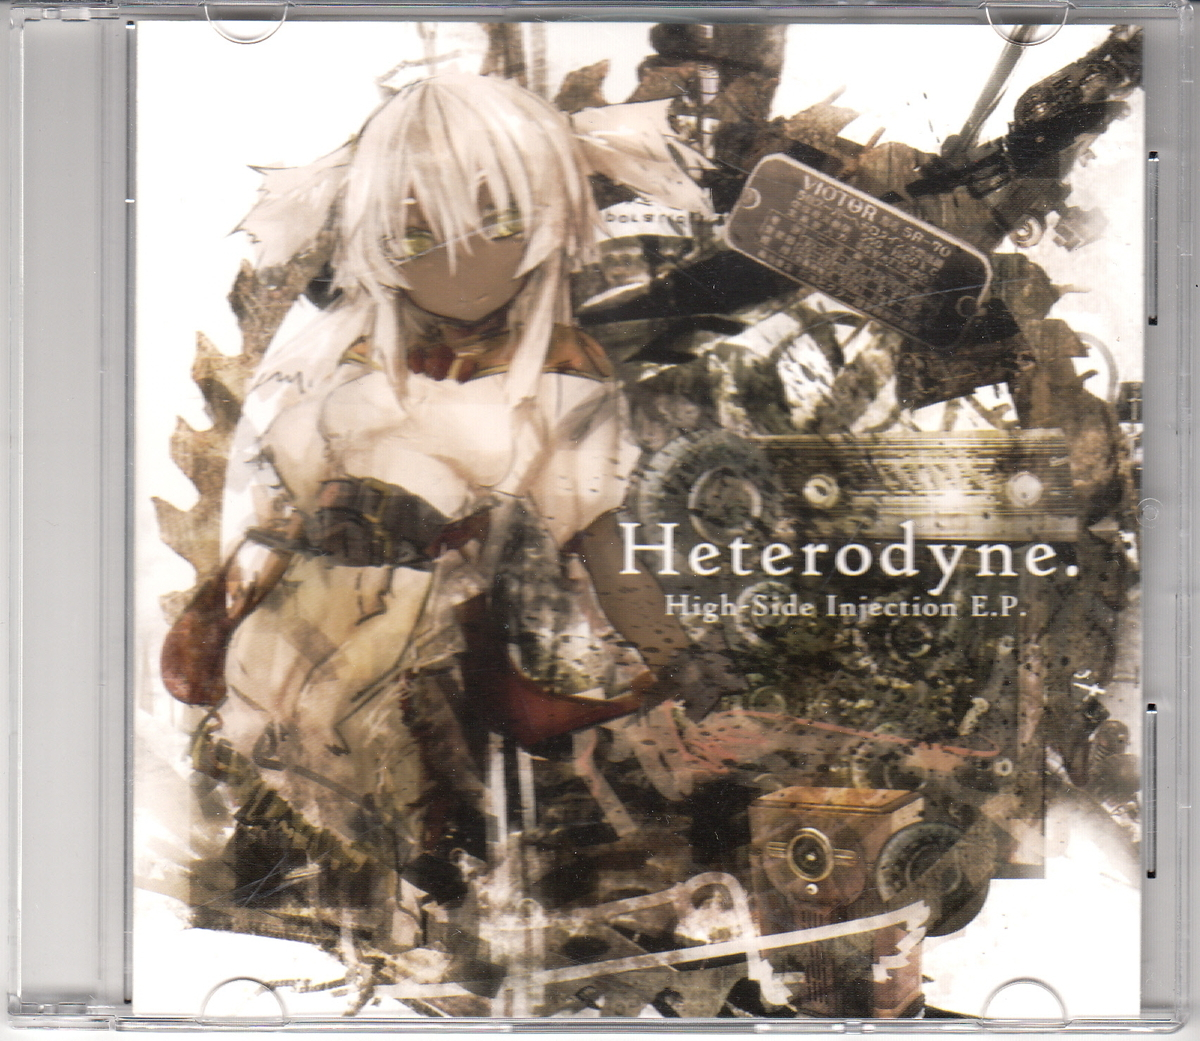 ★Heterodyne.:High-Side Injection E.P./スターオーシャンメタルアレンジ/Vaguedge dies for dies irae,Imperial Circus Dead Decadence_画像1